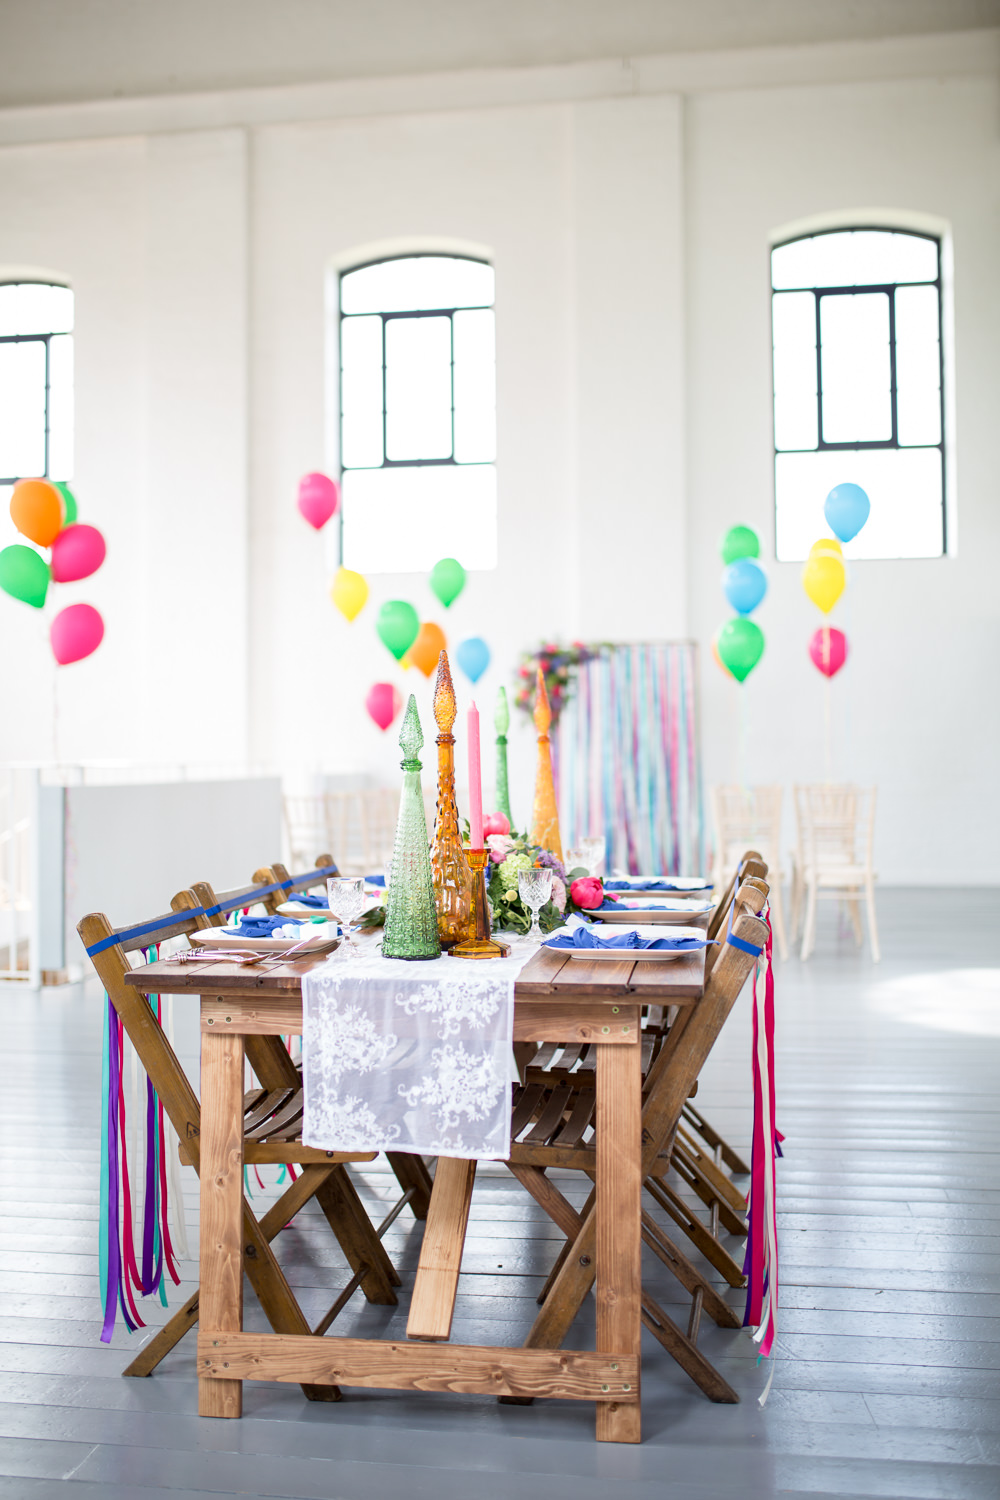 Tablescape Table Decor Decoration Ribbon Chairs Flowers Colourful Balloons Wedding Ideas Florence Berry Photography